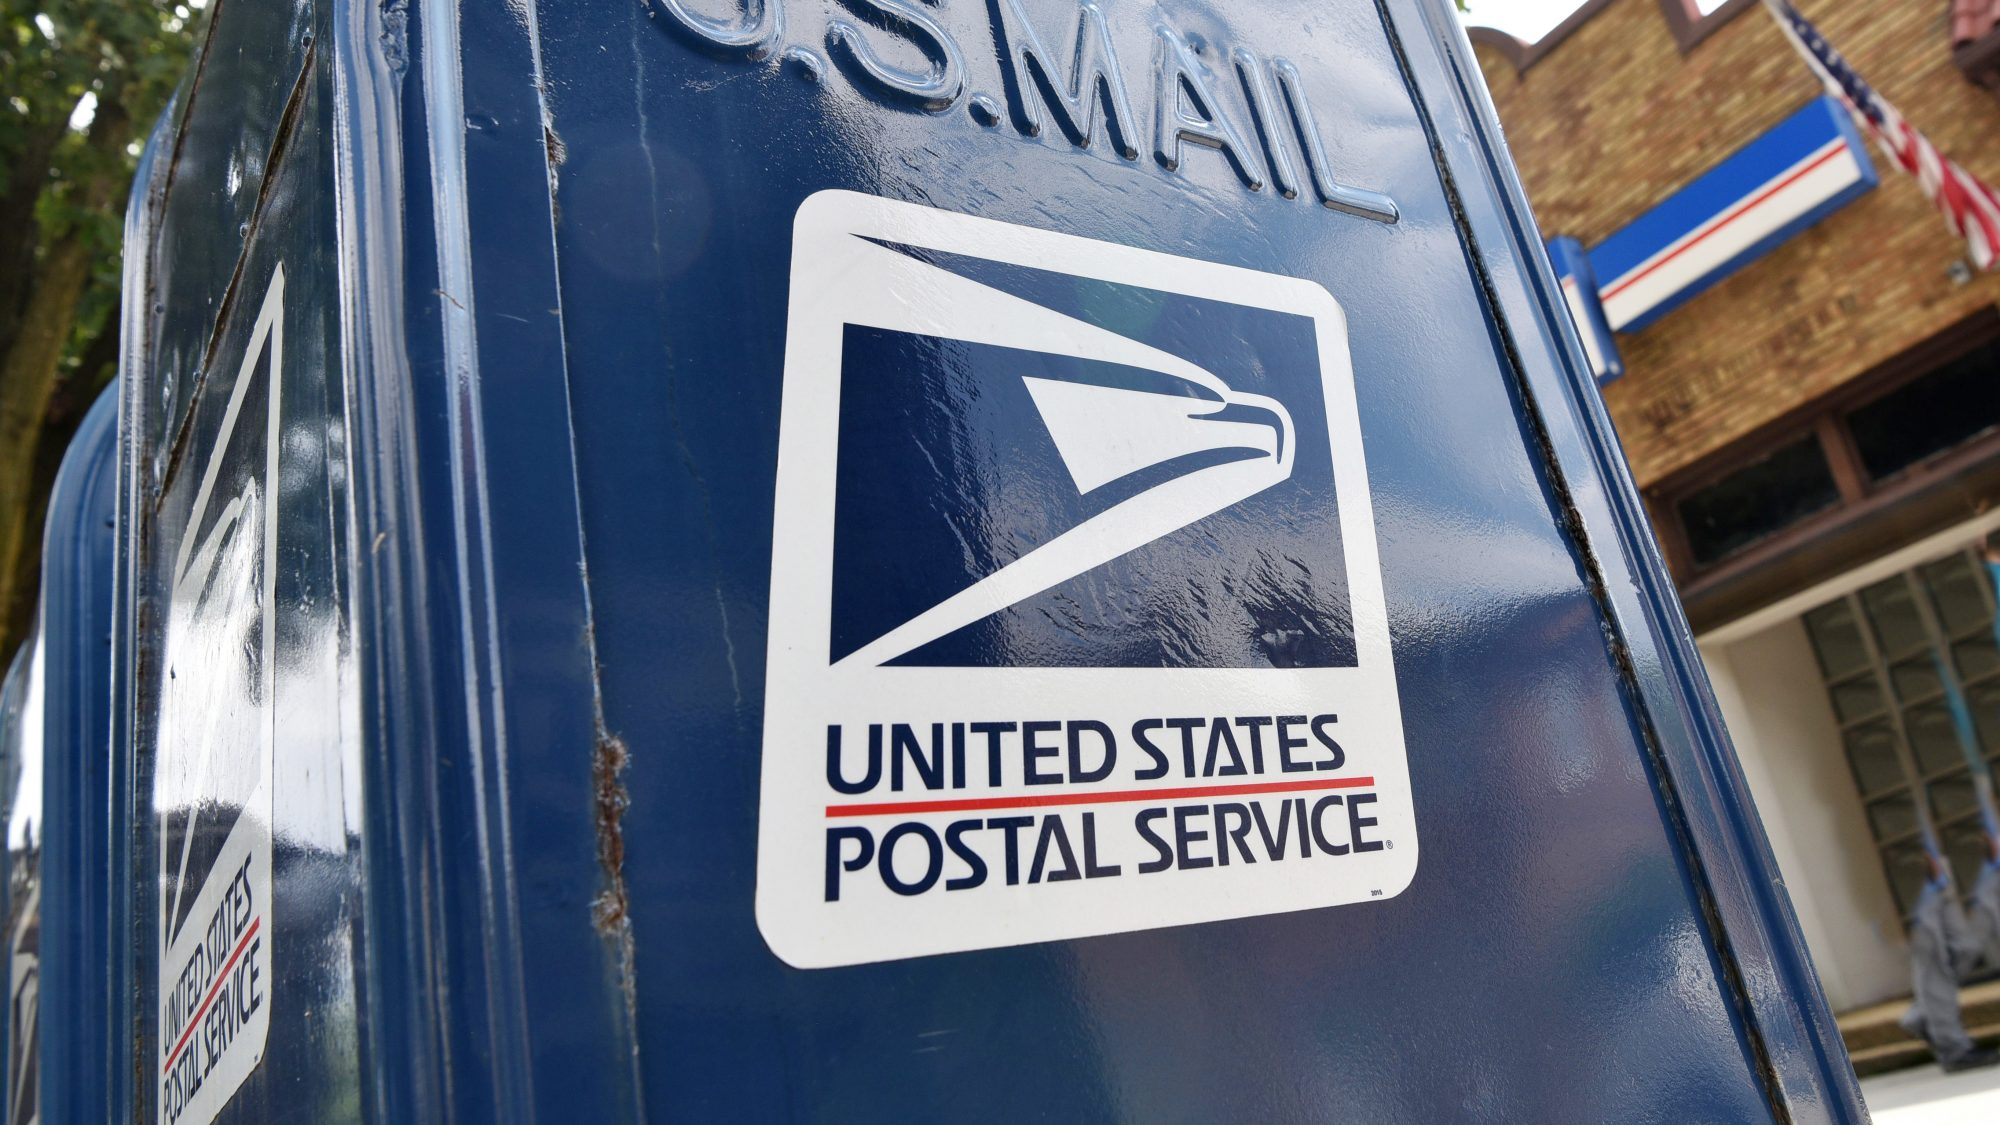 USPS holiday shipping deadlines 2020 - dates for holiday shipping with USPS (USPS mailbox)